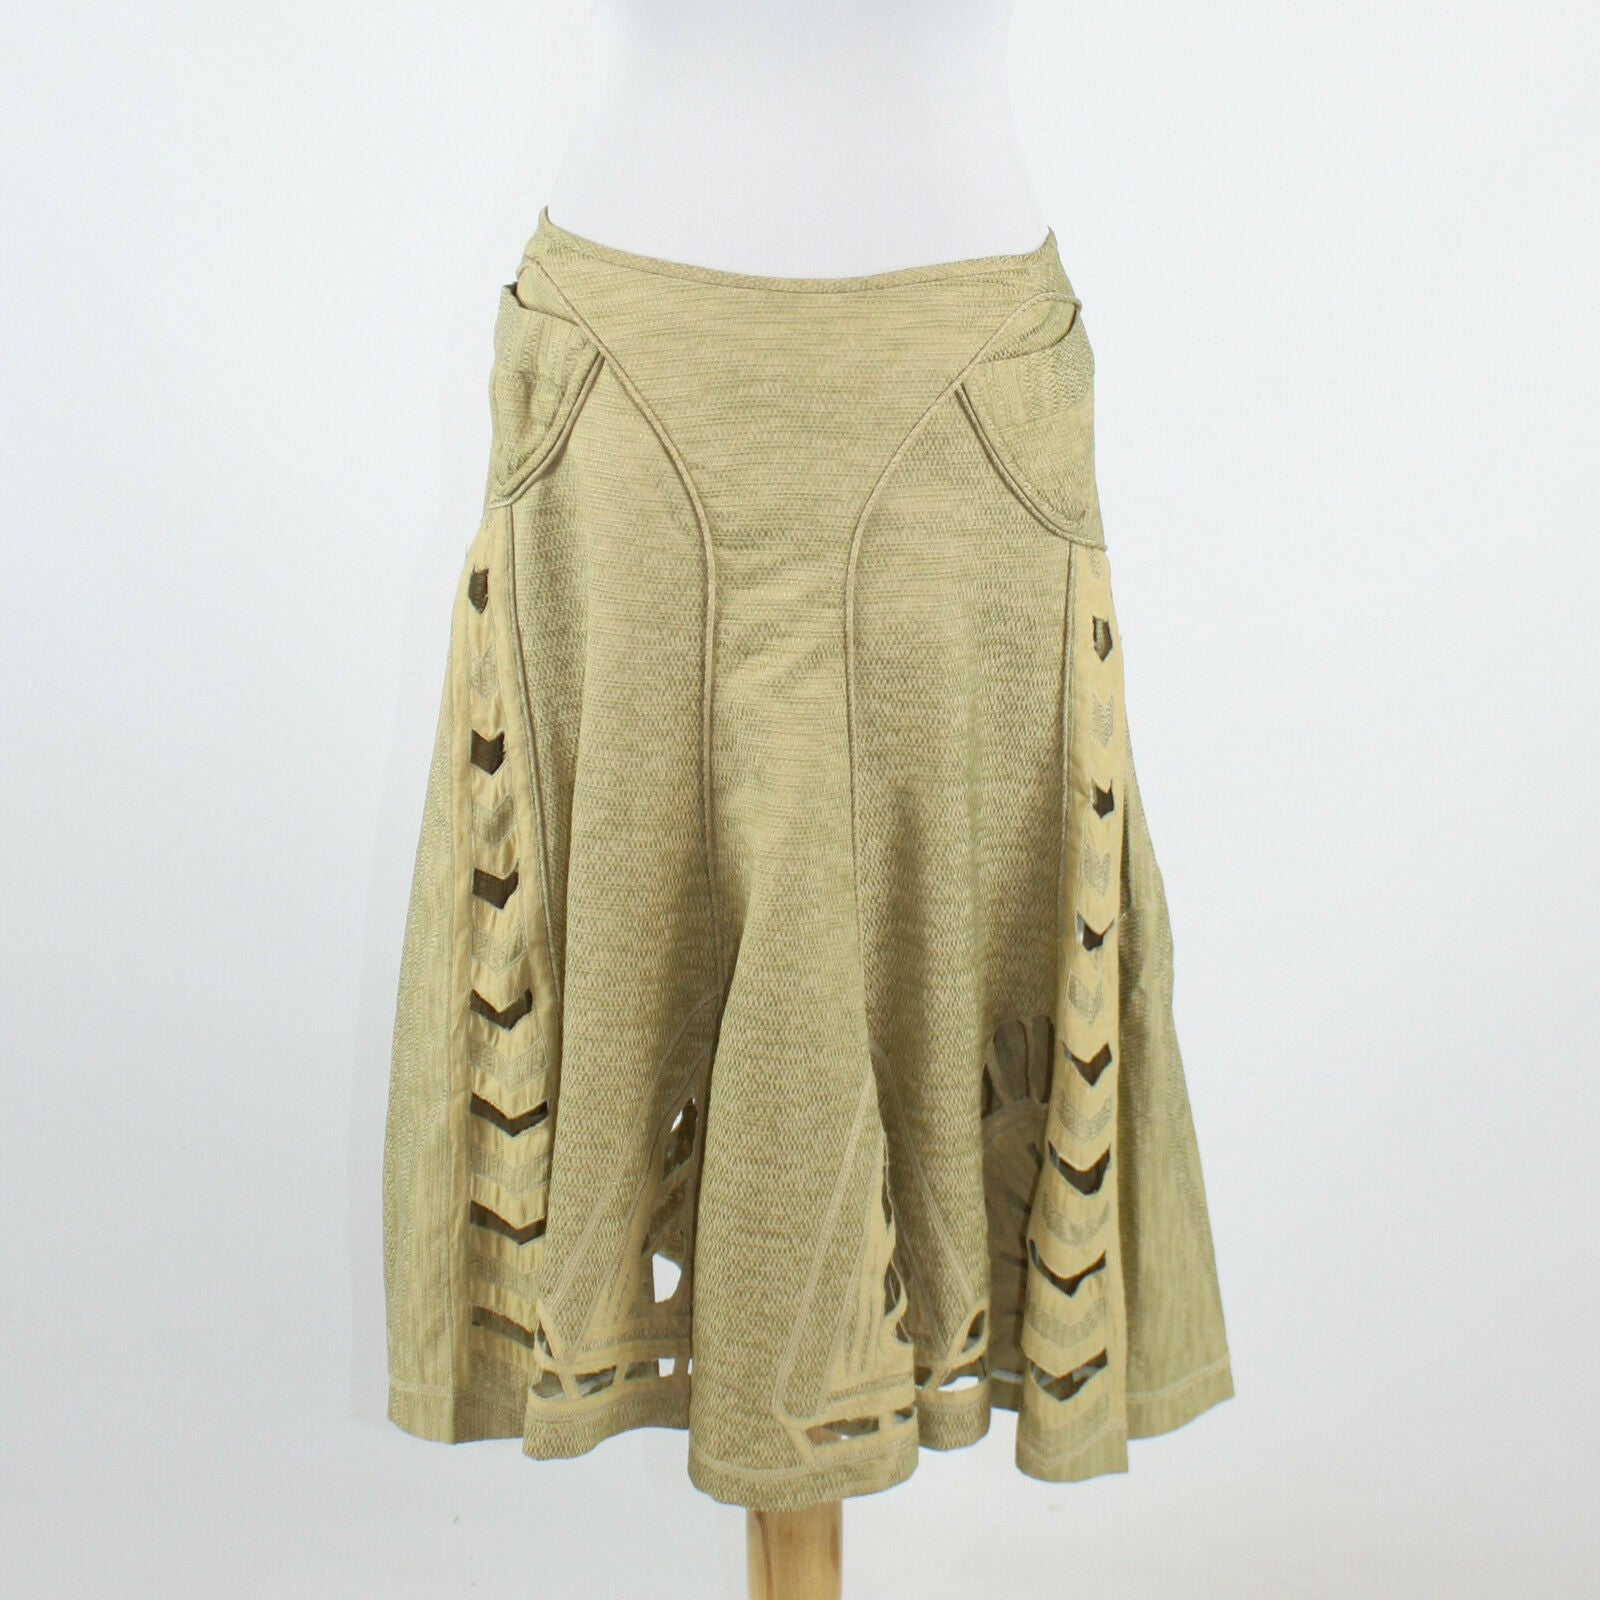 Greenish beige ZAC POSEN A-Line arrow shaped cut out knee-length skirt 6